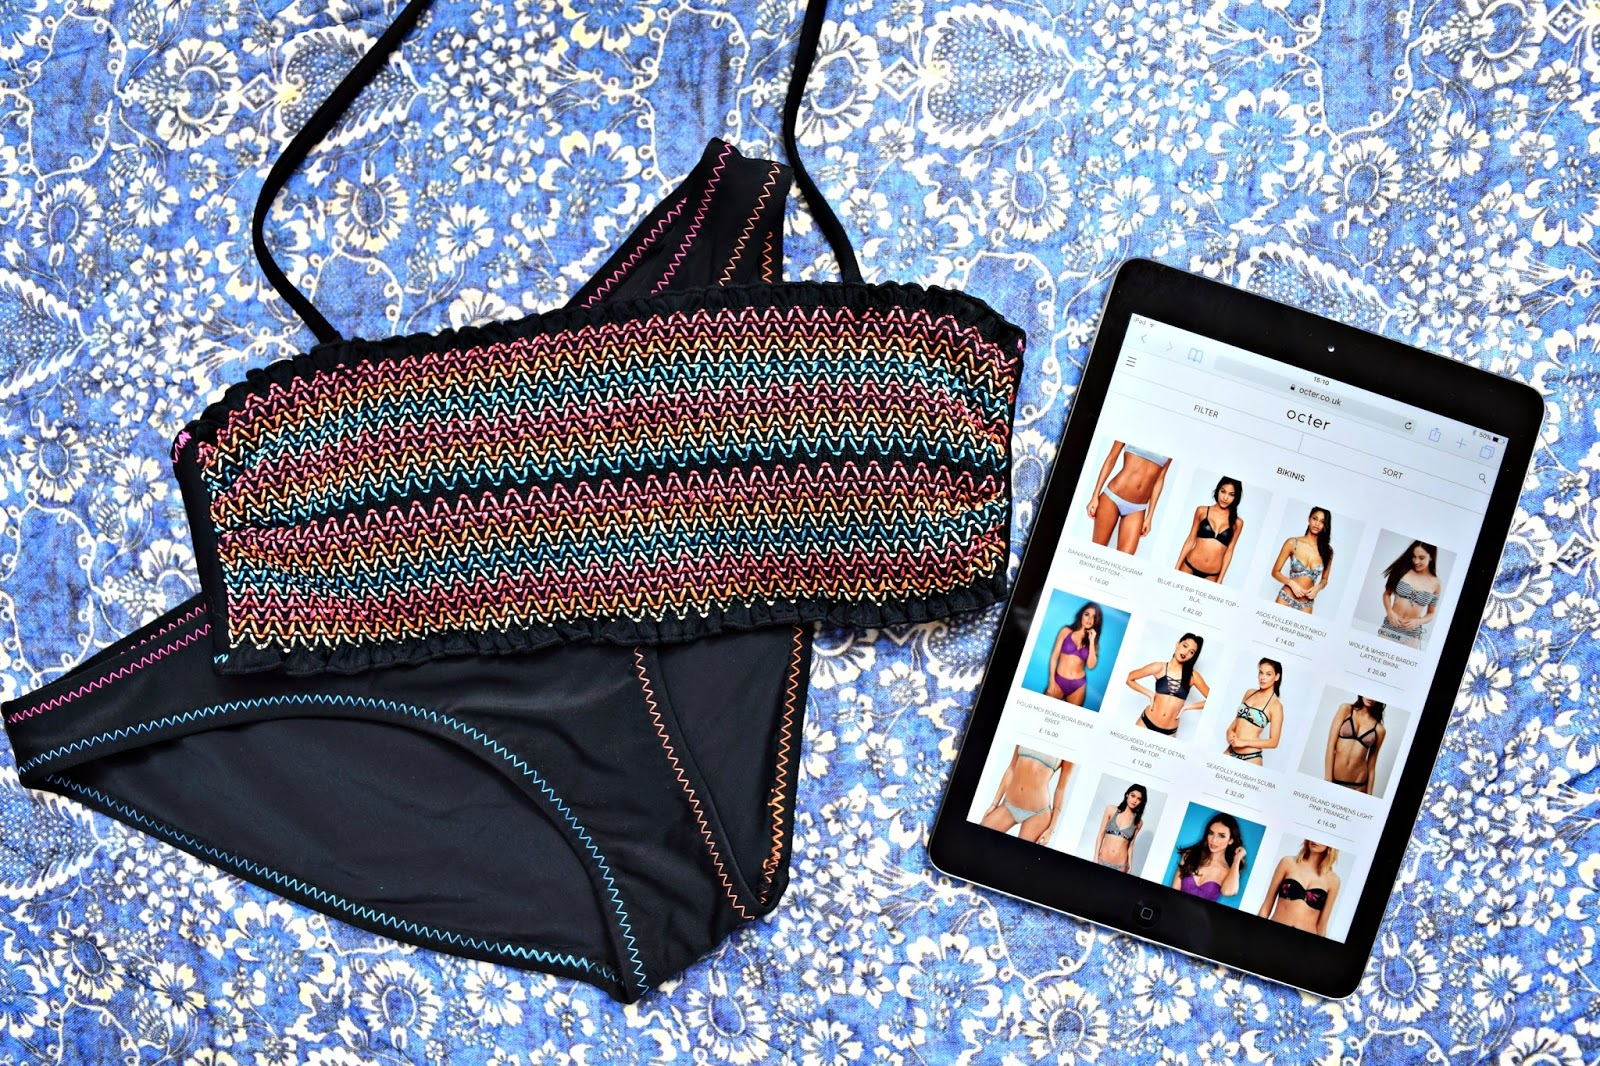 New Look Bandeau Bikini discovered with Octer